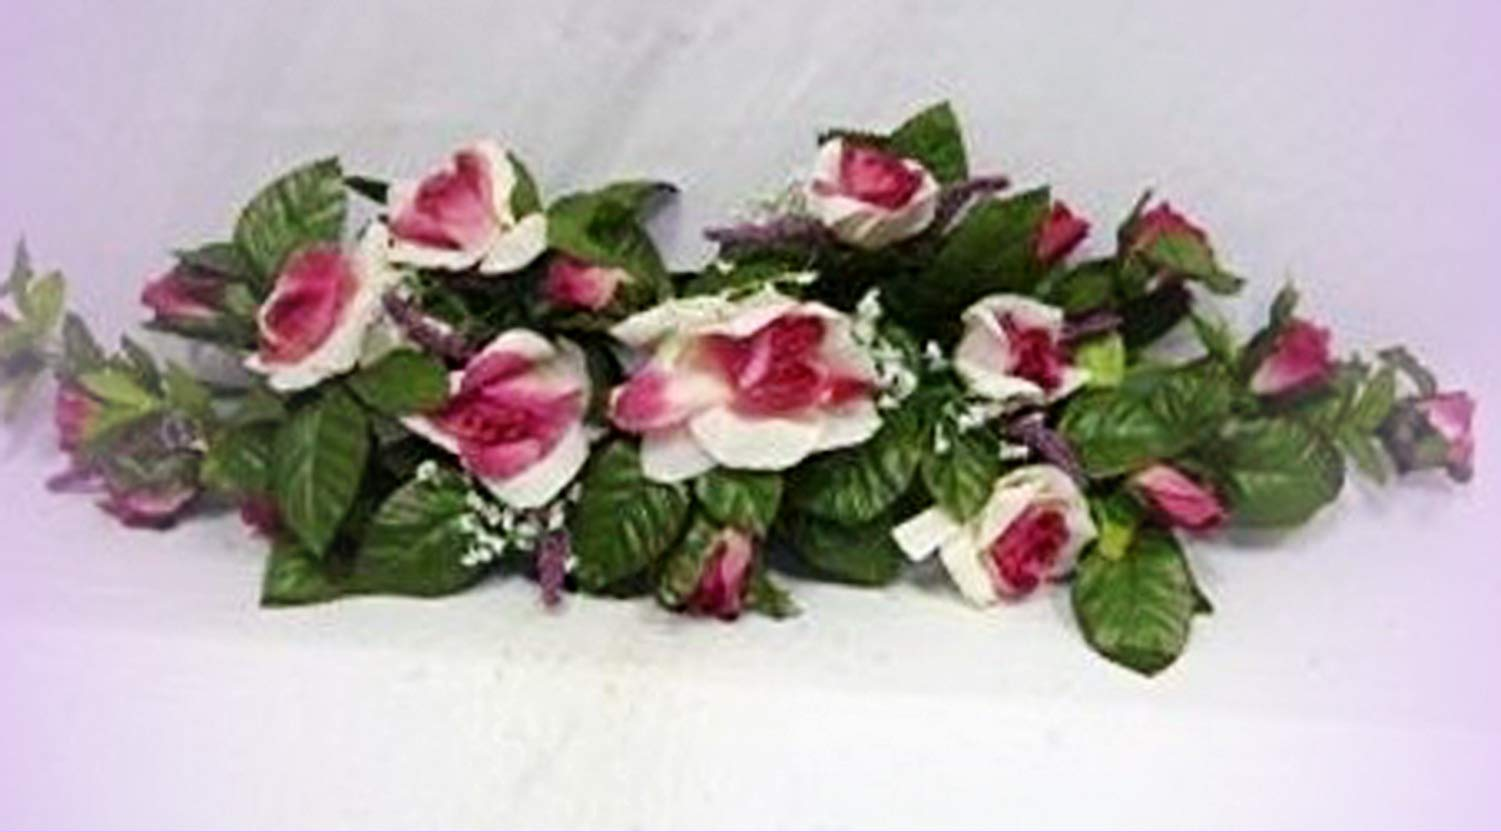 Inna-Wholesale-Art-Crafts-New-Rose-Swag-Cream-Mauve-Silk-Centeripece-Decorating-Flowers-Arch-Gazebo-DIY-Perfect-for-Any-Wedding-Special-Occasion-or-Home-Office-Dcor